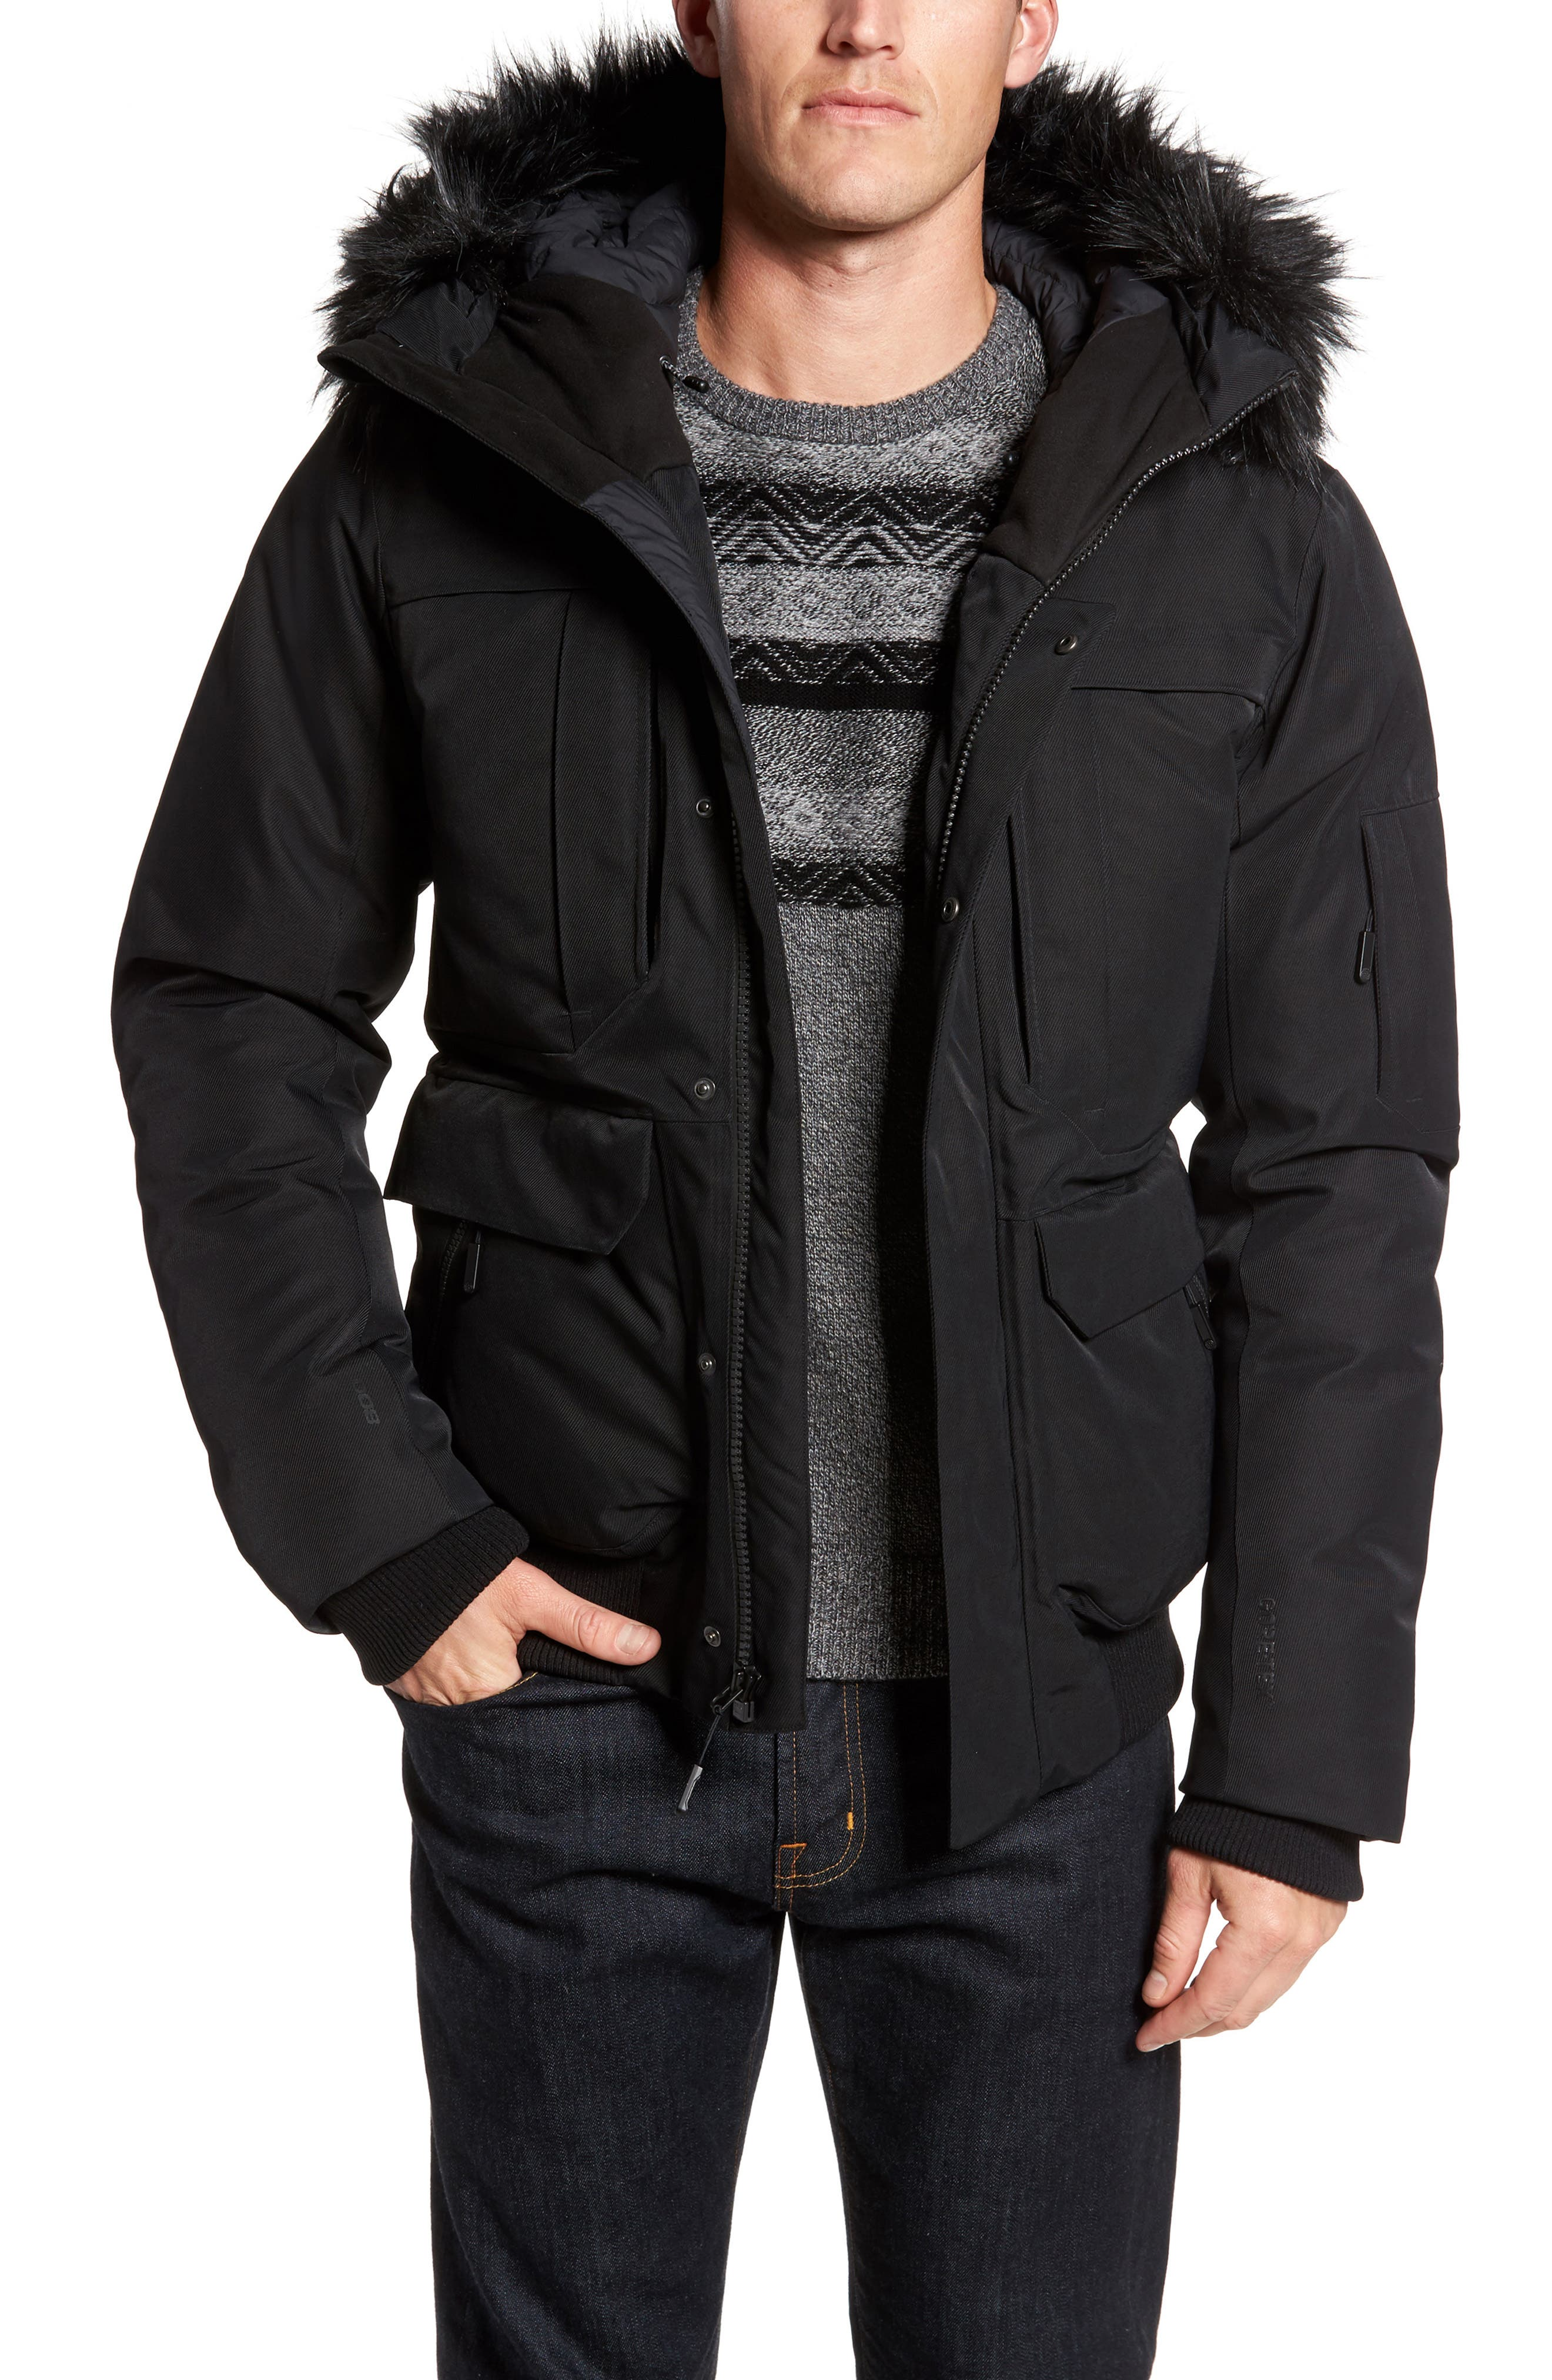 Cryos Expedition Gore-Tex<sup>®</sup> Bomber Jacket,                             Main thumbnail 1, color,